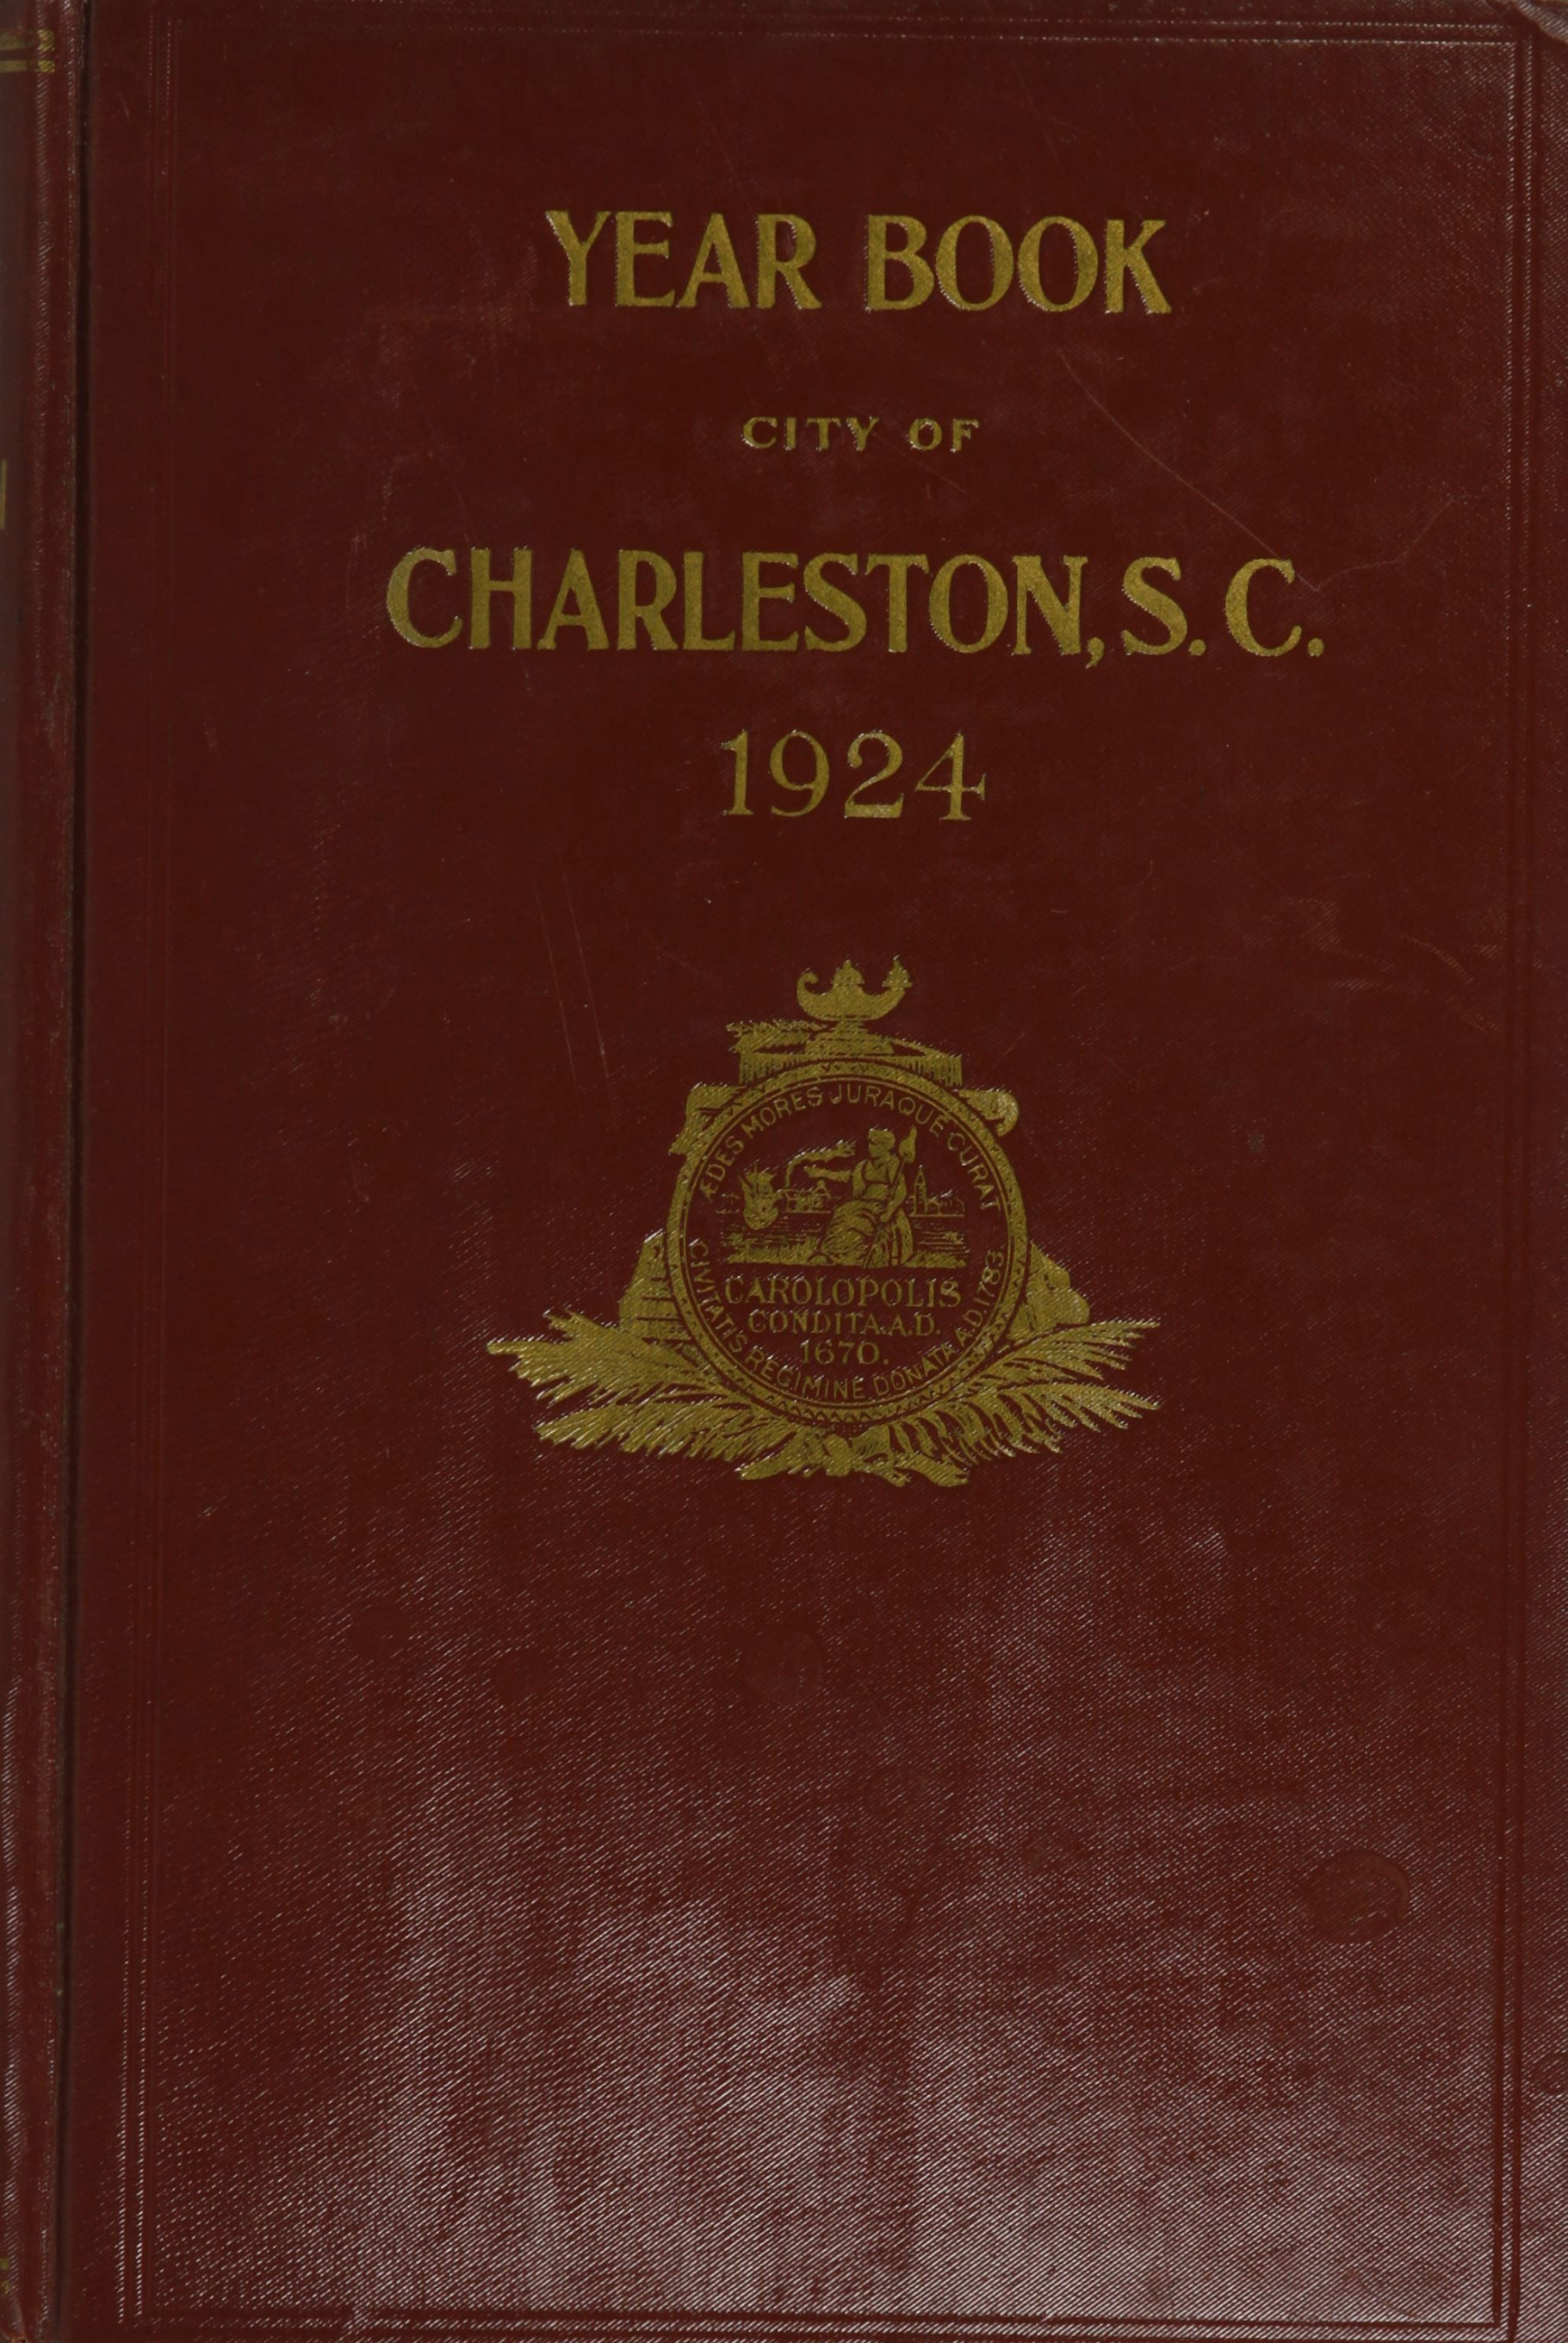 Charleston Yearbook, 1924